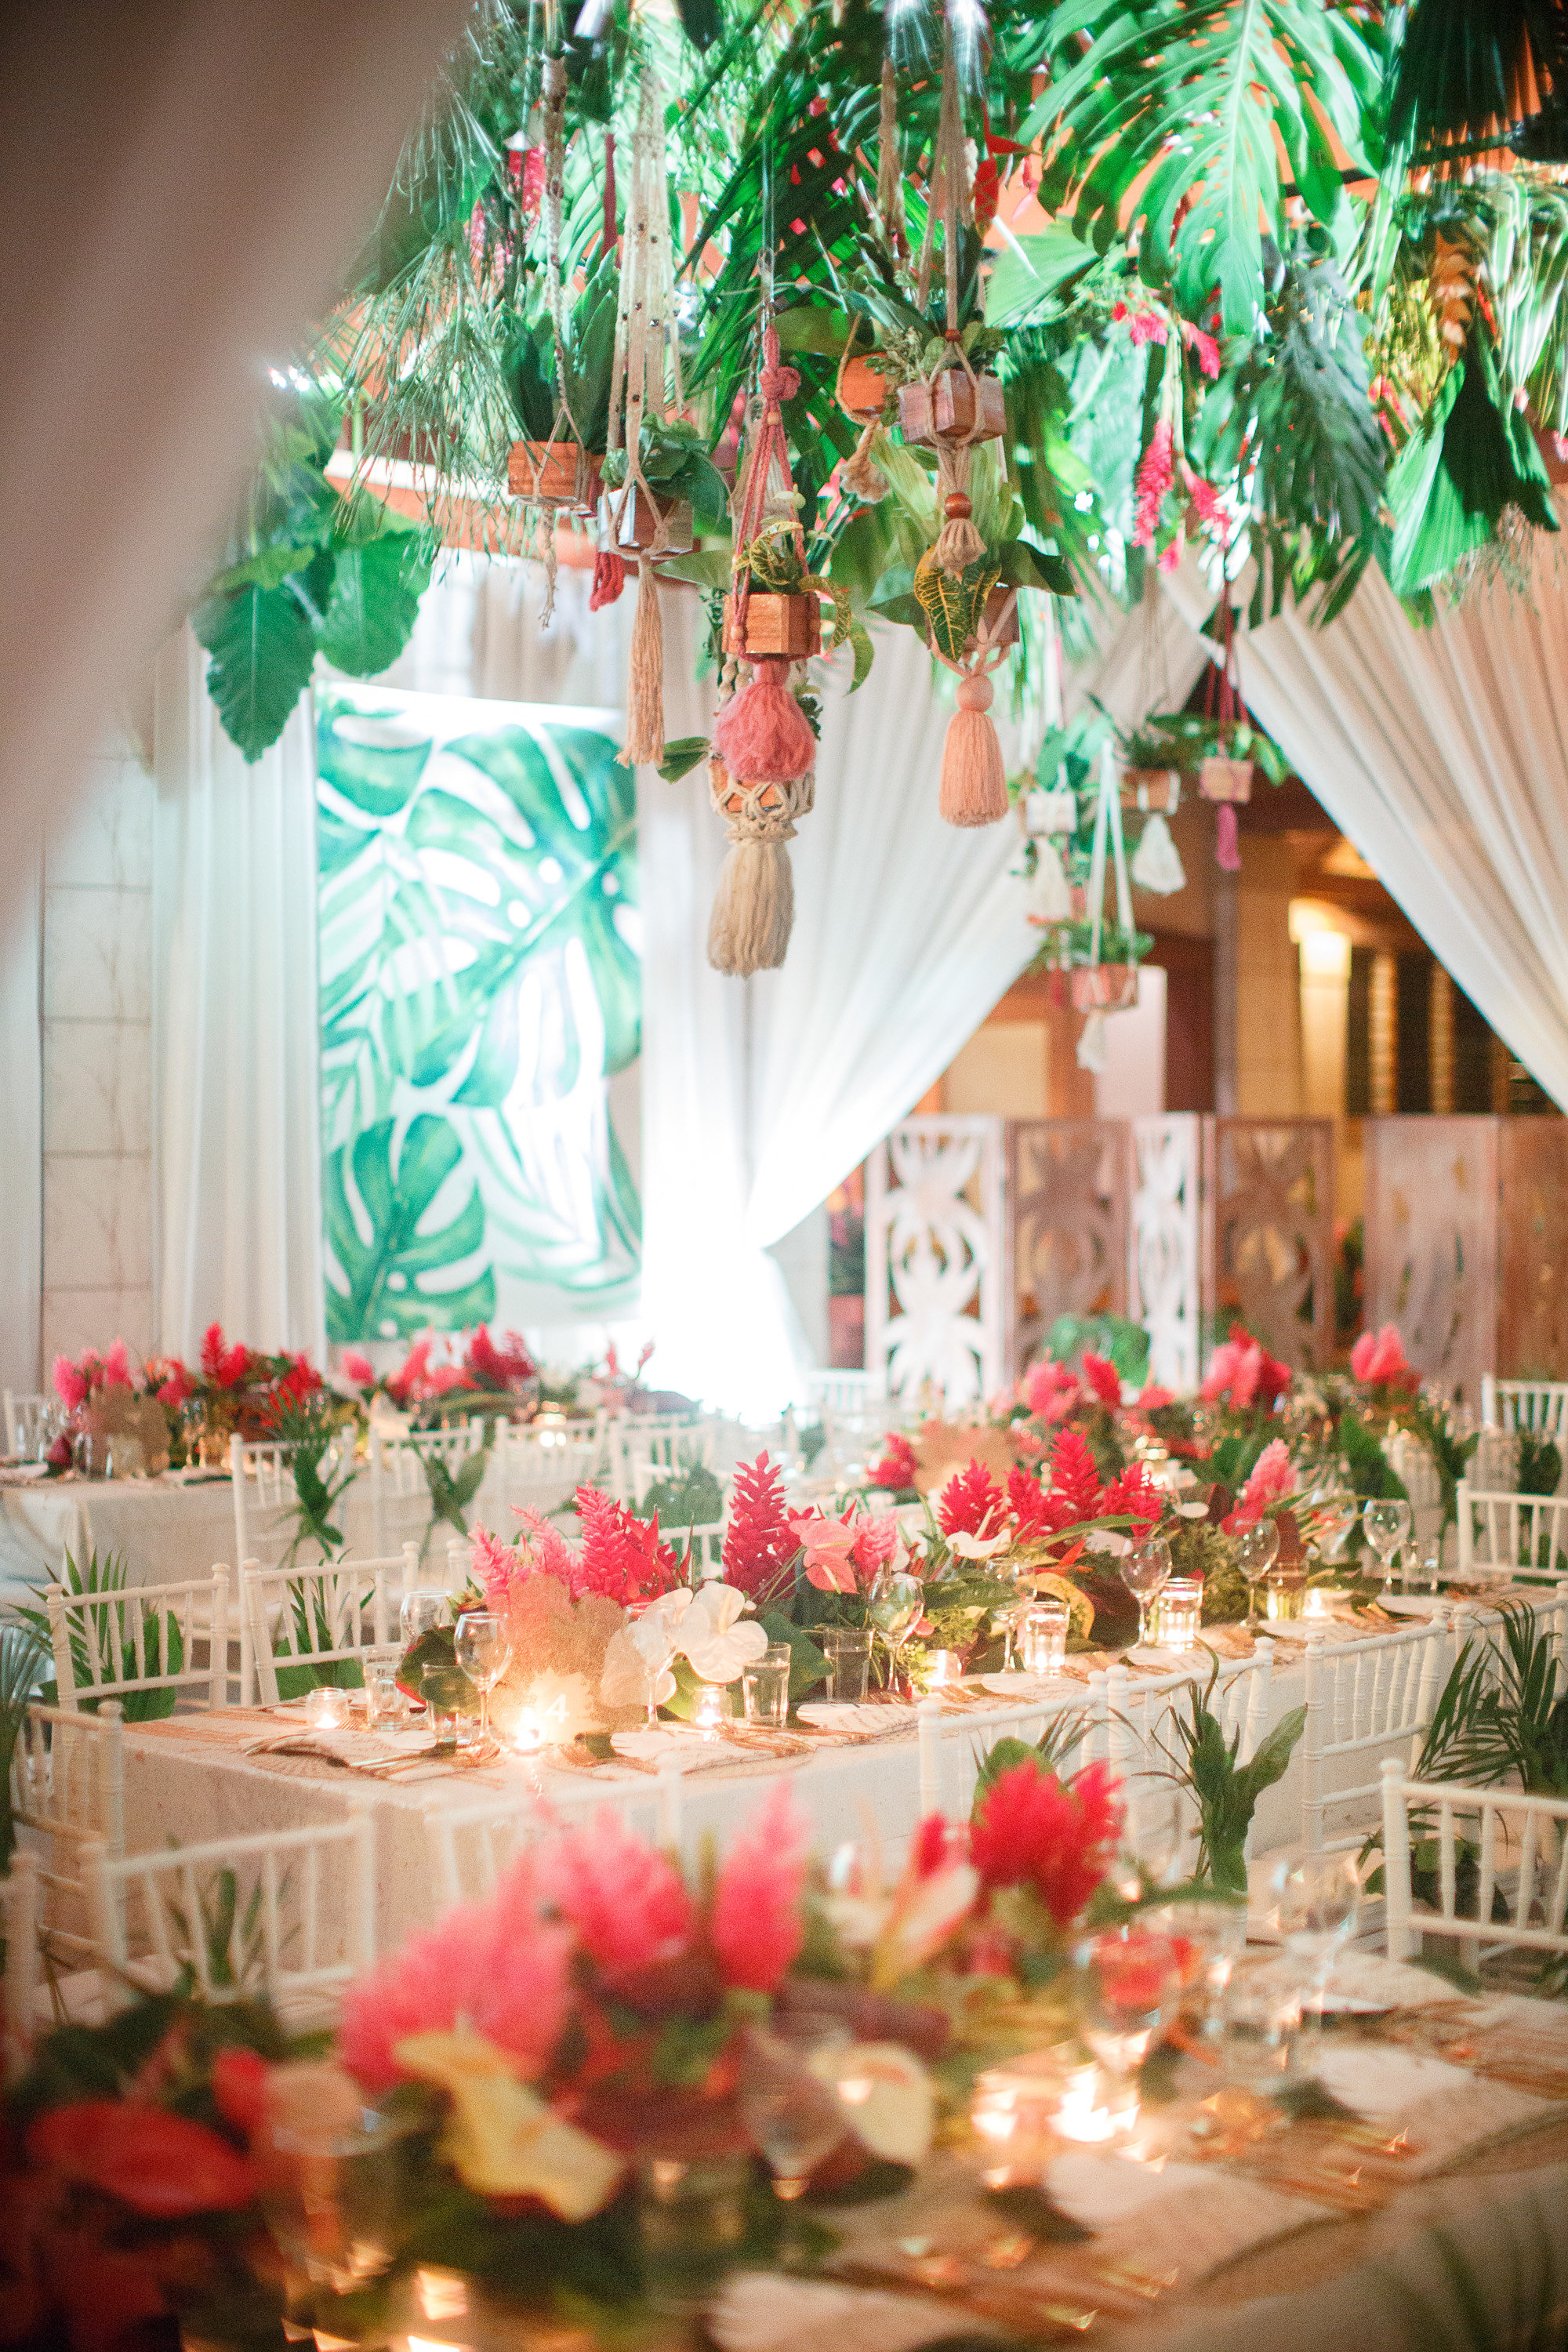 Fiji wedding - luxury linen, gold cutlery, centrepieces, white tiffany chairs, hanging macrame and pot plants.jpg